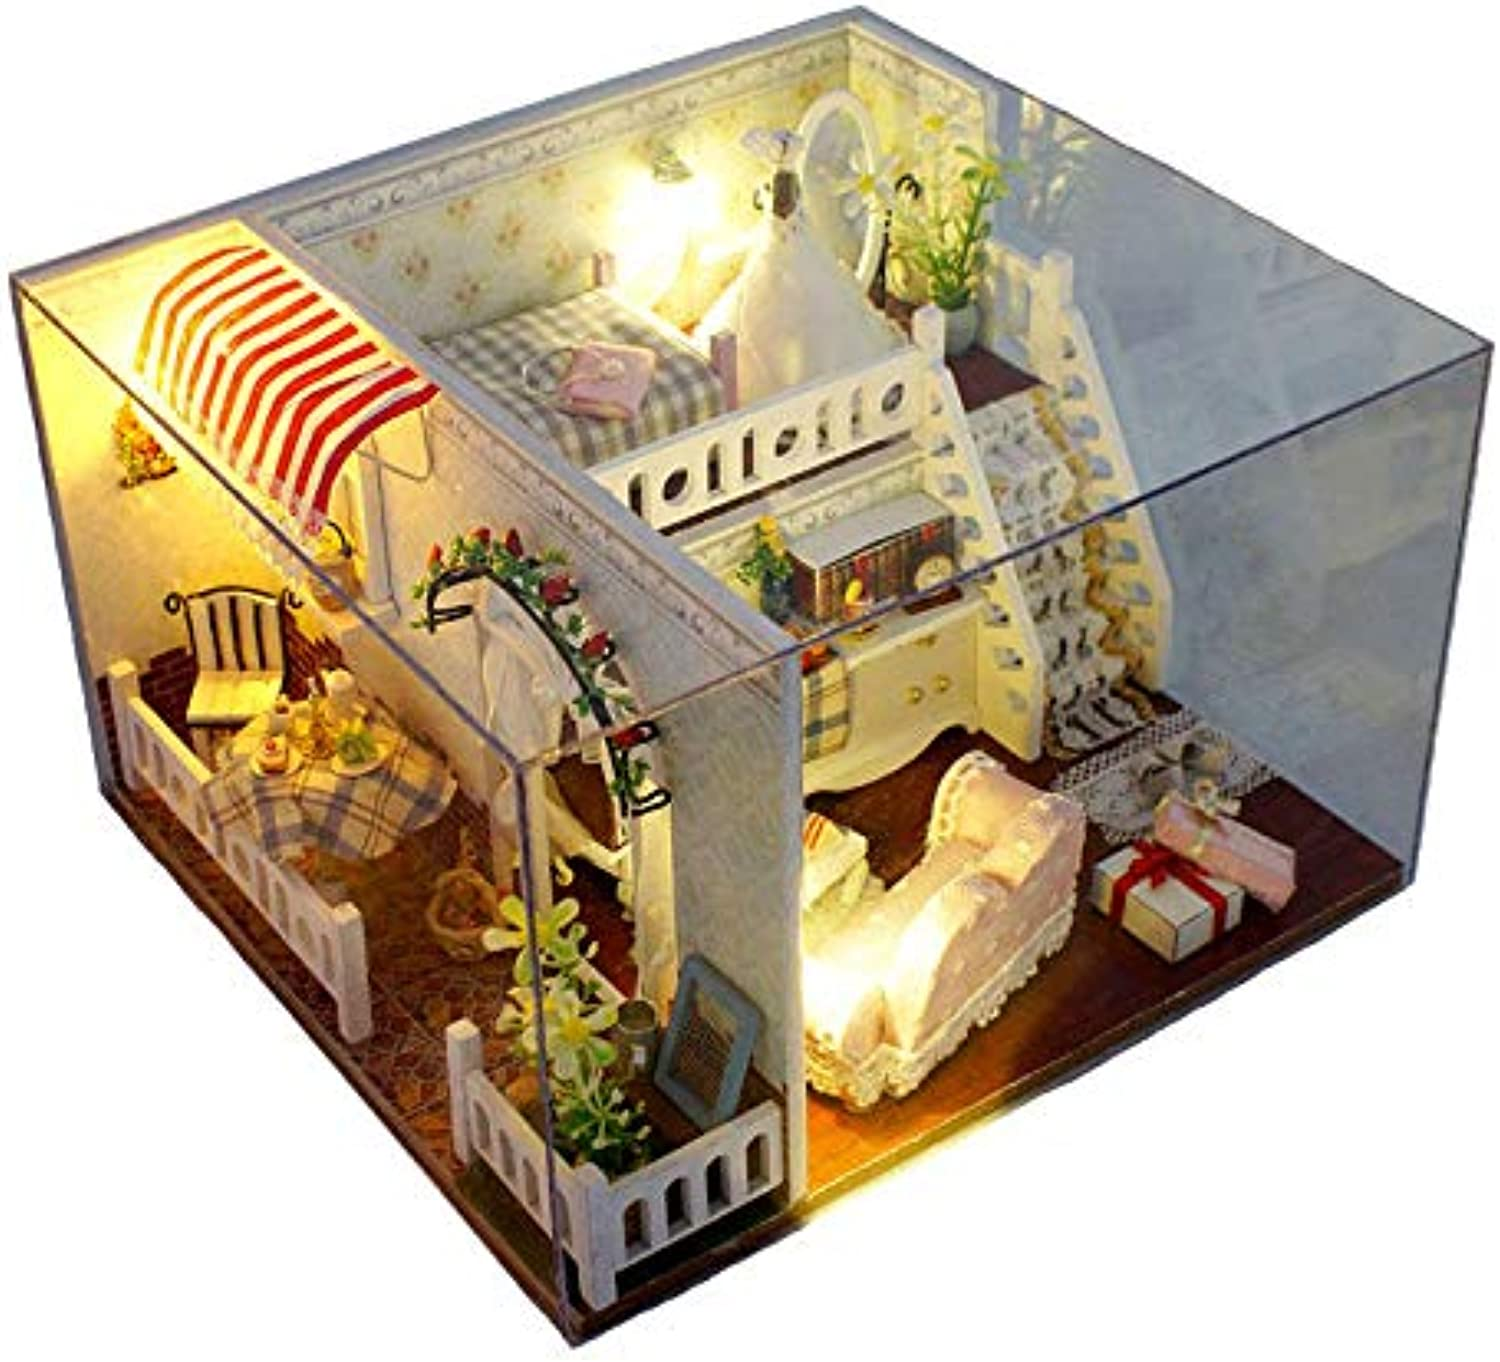 T-Yu Miss Margaret's House with Cover Miniature Model Gift Collection DecorDolls & Stuffed Toys Doll House & Miniature1 x DIY Dollhouse Kit